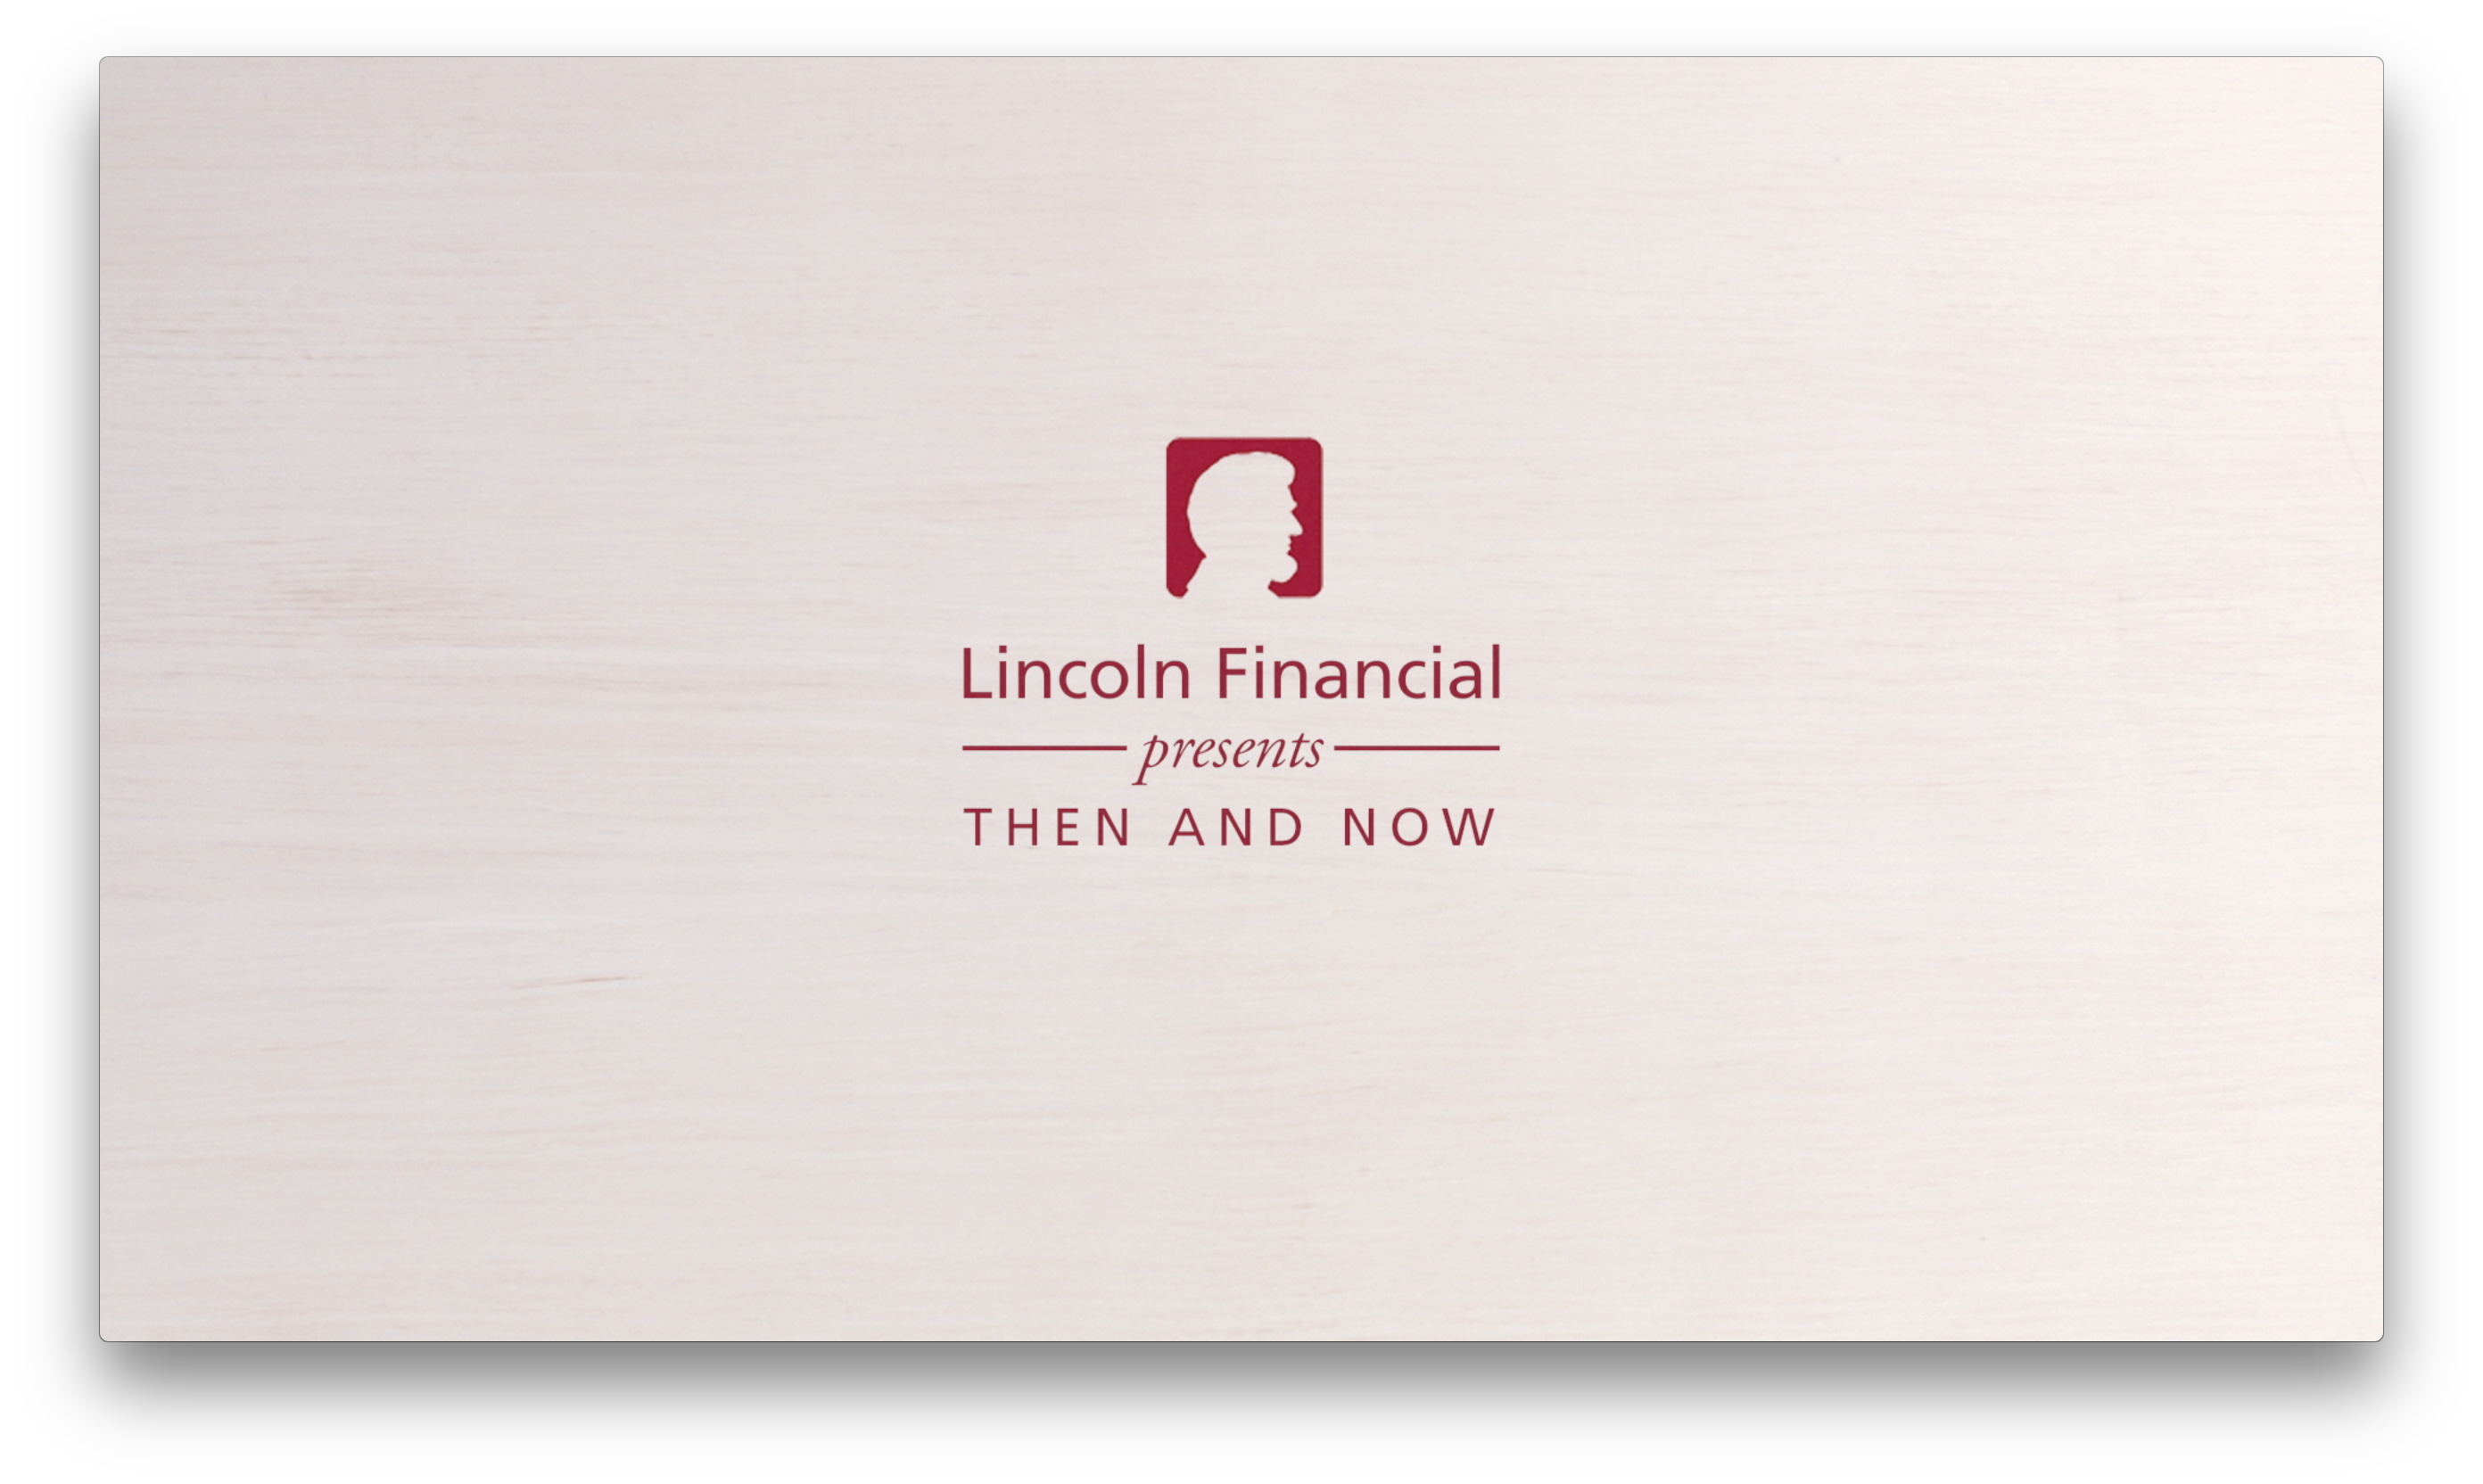 Lincoln Financial Group - Then and Now